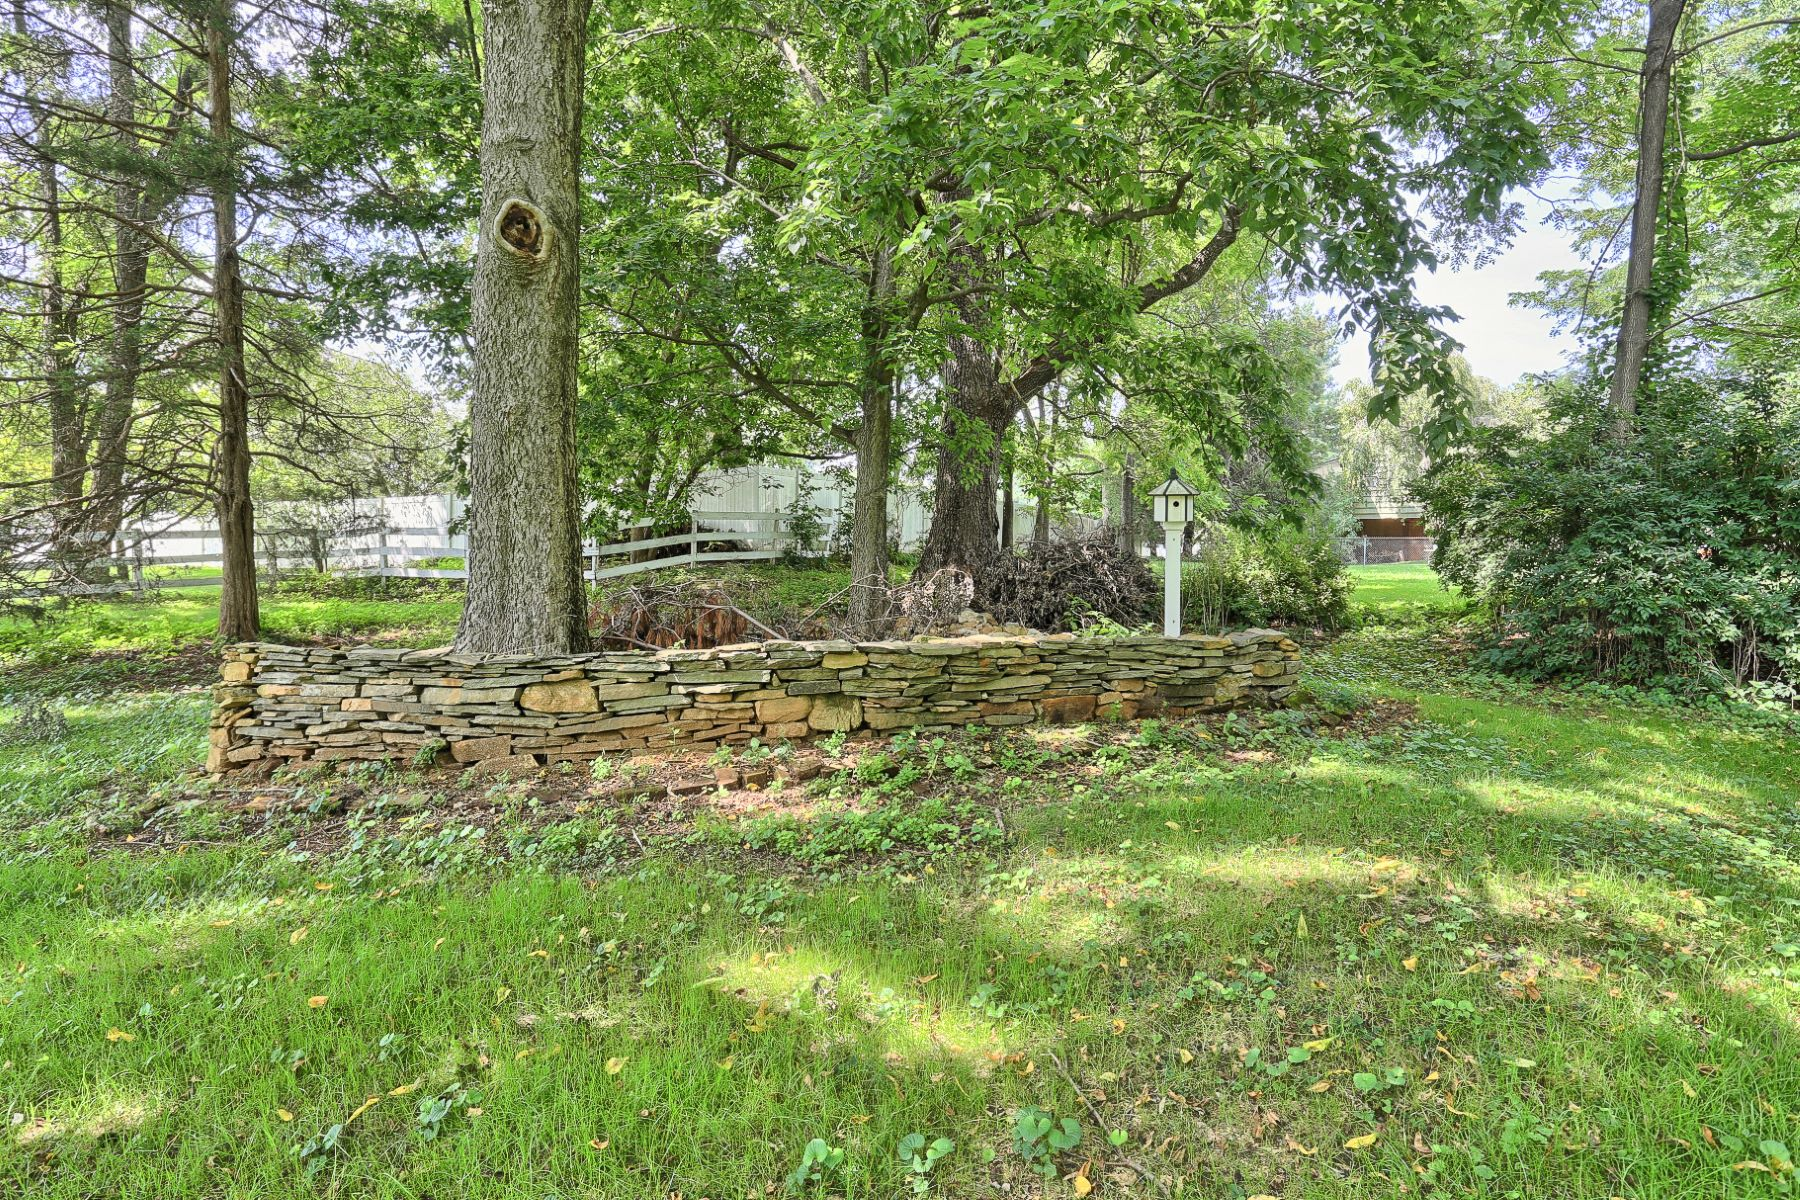 Additional photo for property listing at 1981 Landis Valley Road 1981 Landis Valley Road Lot 1 B-A Lancaster, Pennsylvania 17601 United States